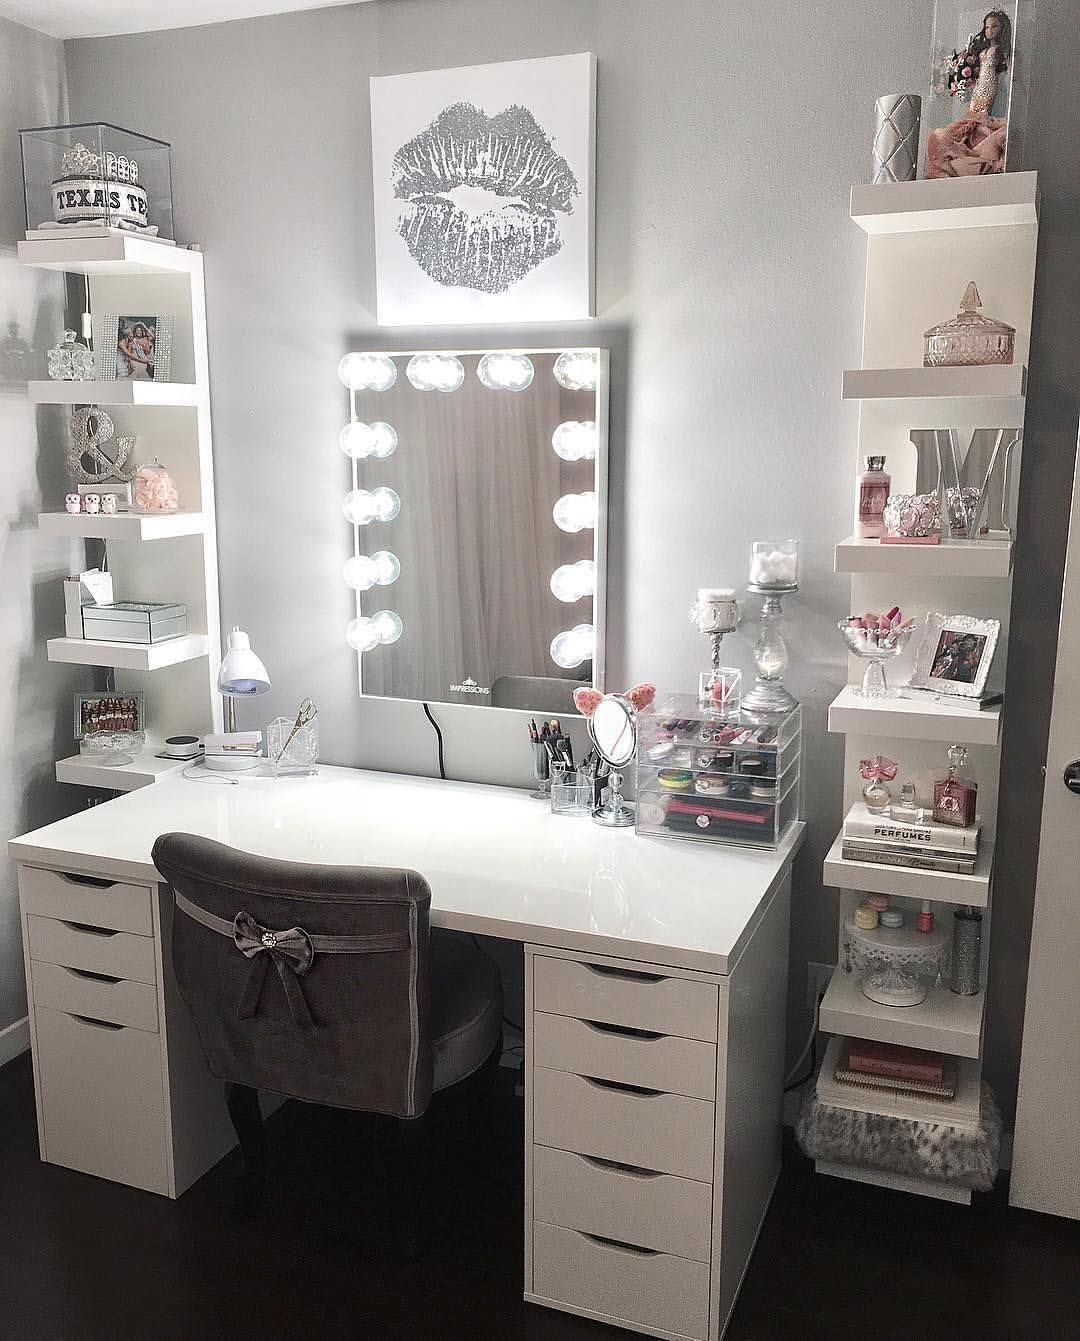 Impressions Vanity Co On Instagram This Glam Space Is A